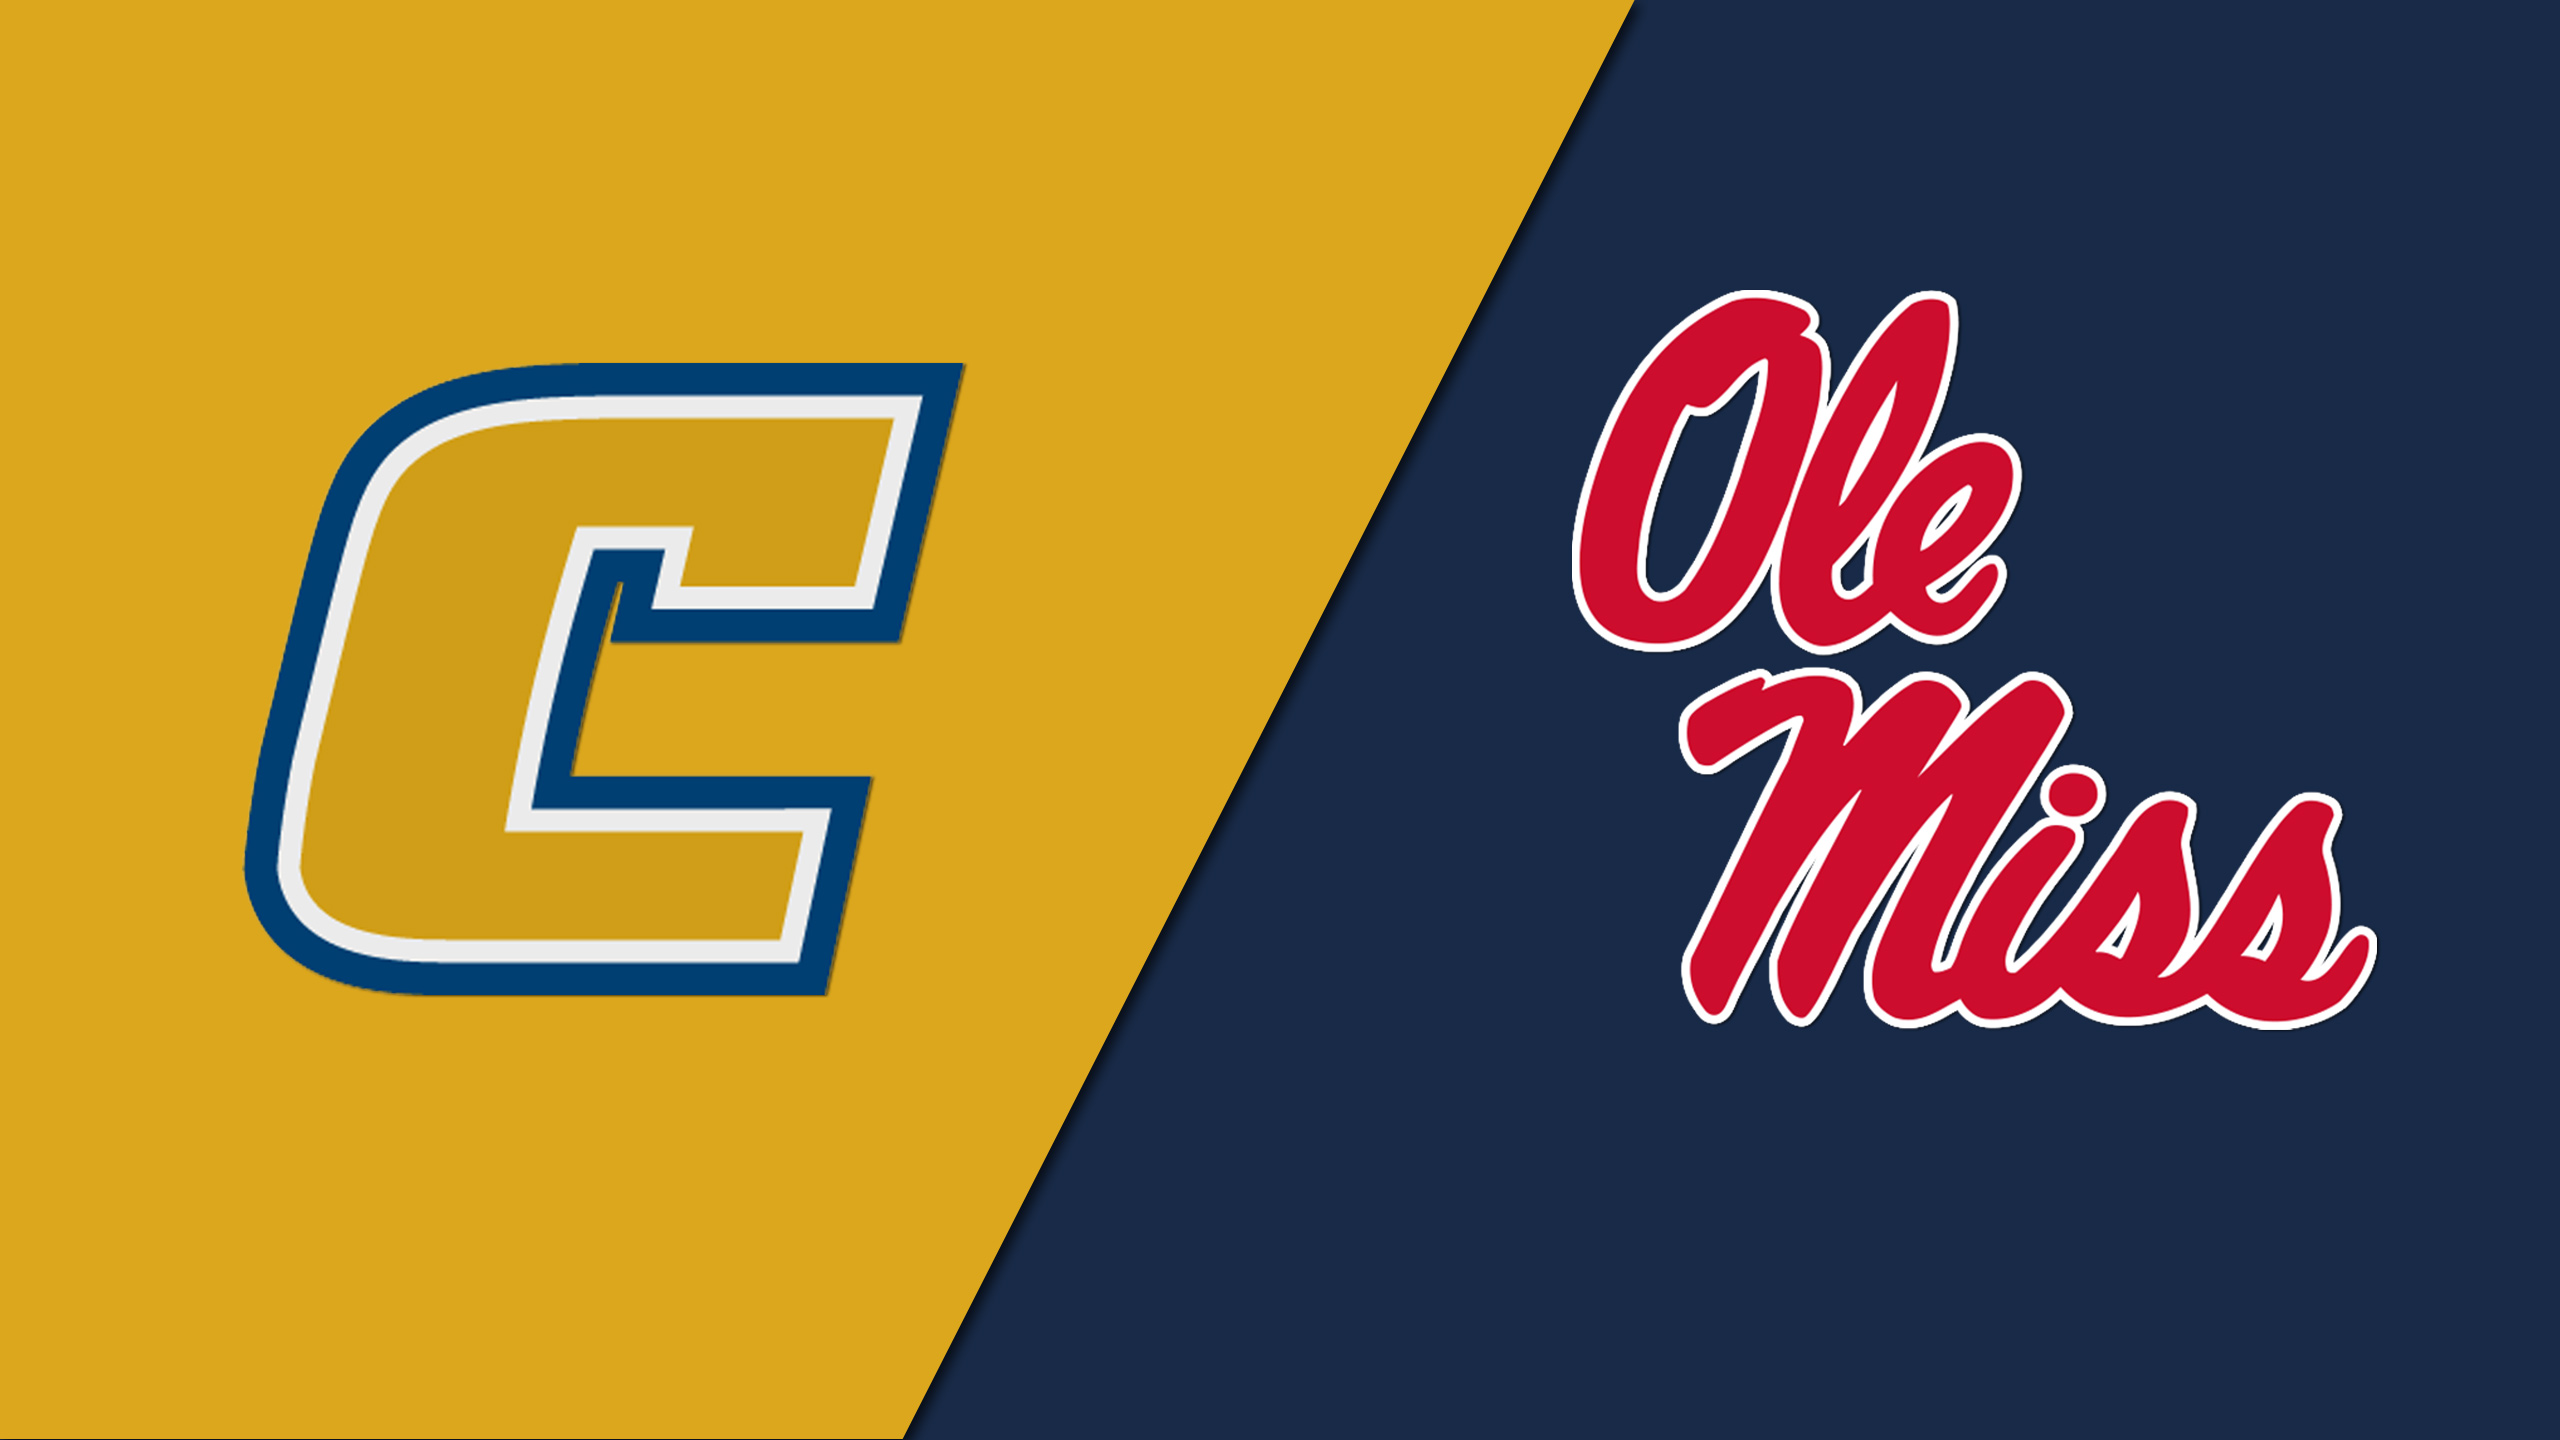 Chattanooga vs. Ole Miss (Site 9 / Game 2)